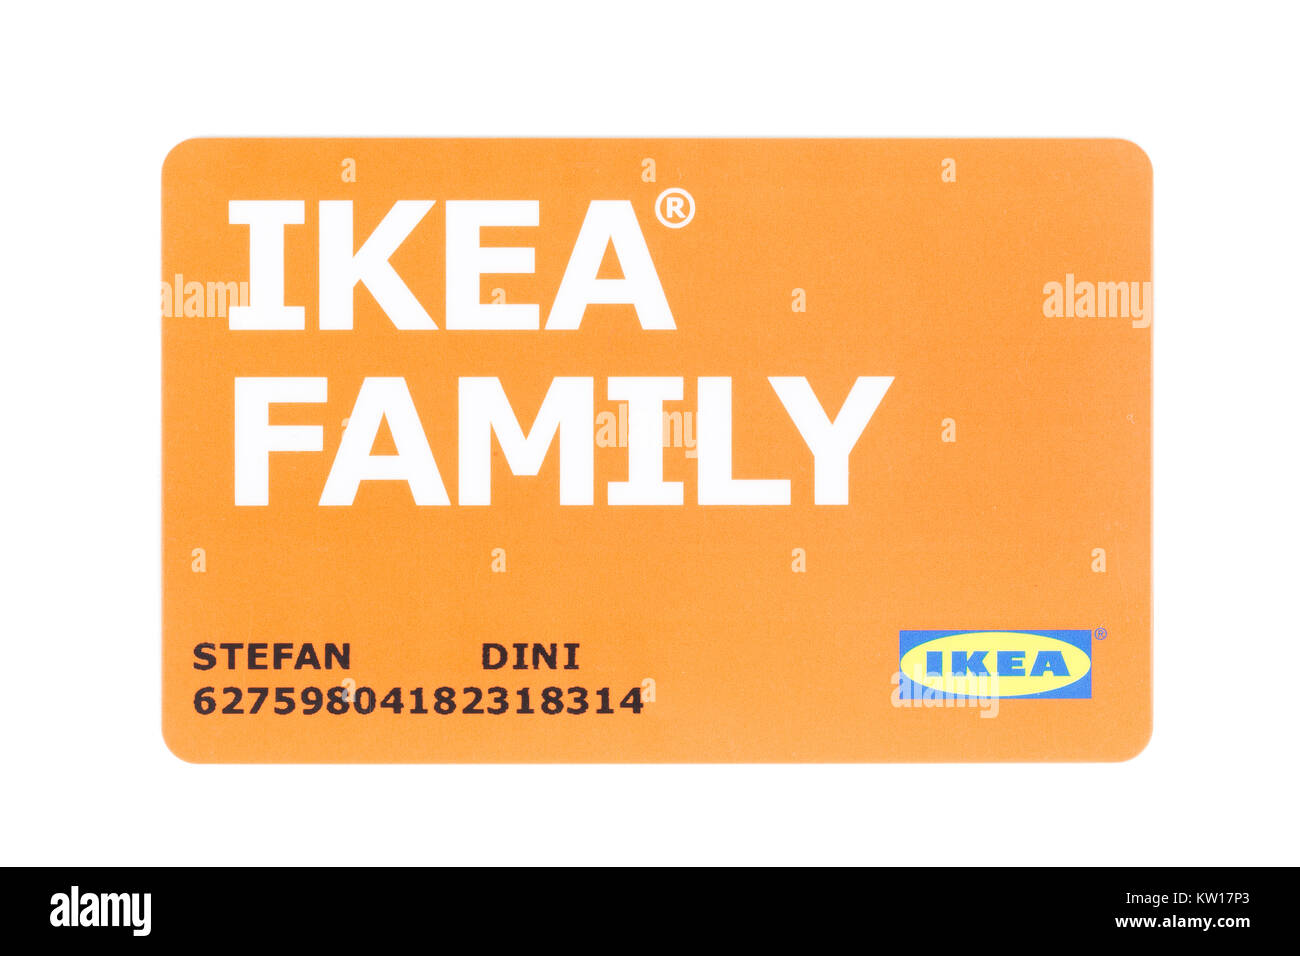 Ikea Family Card Stockbild